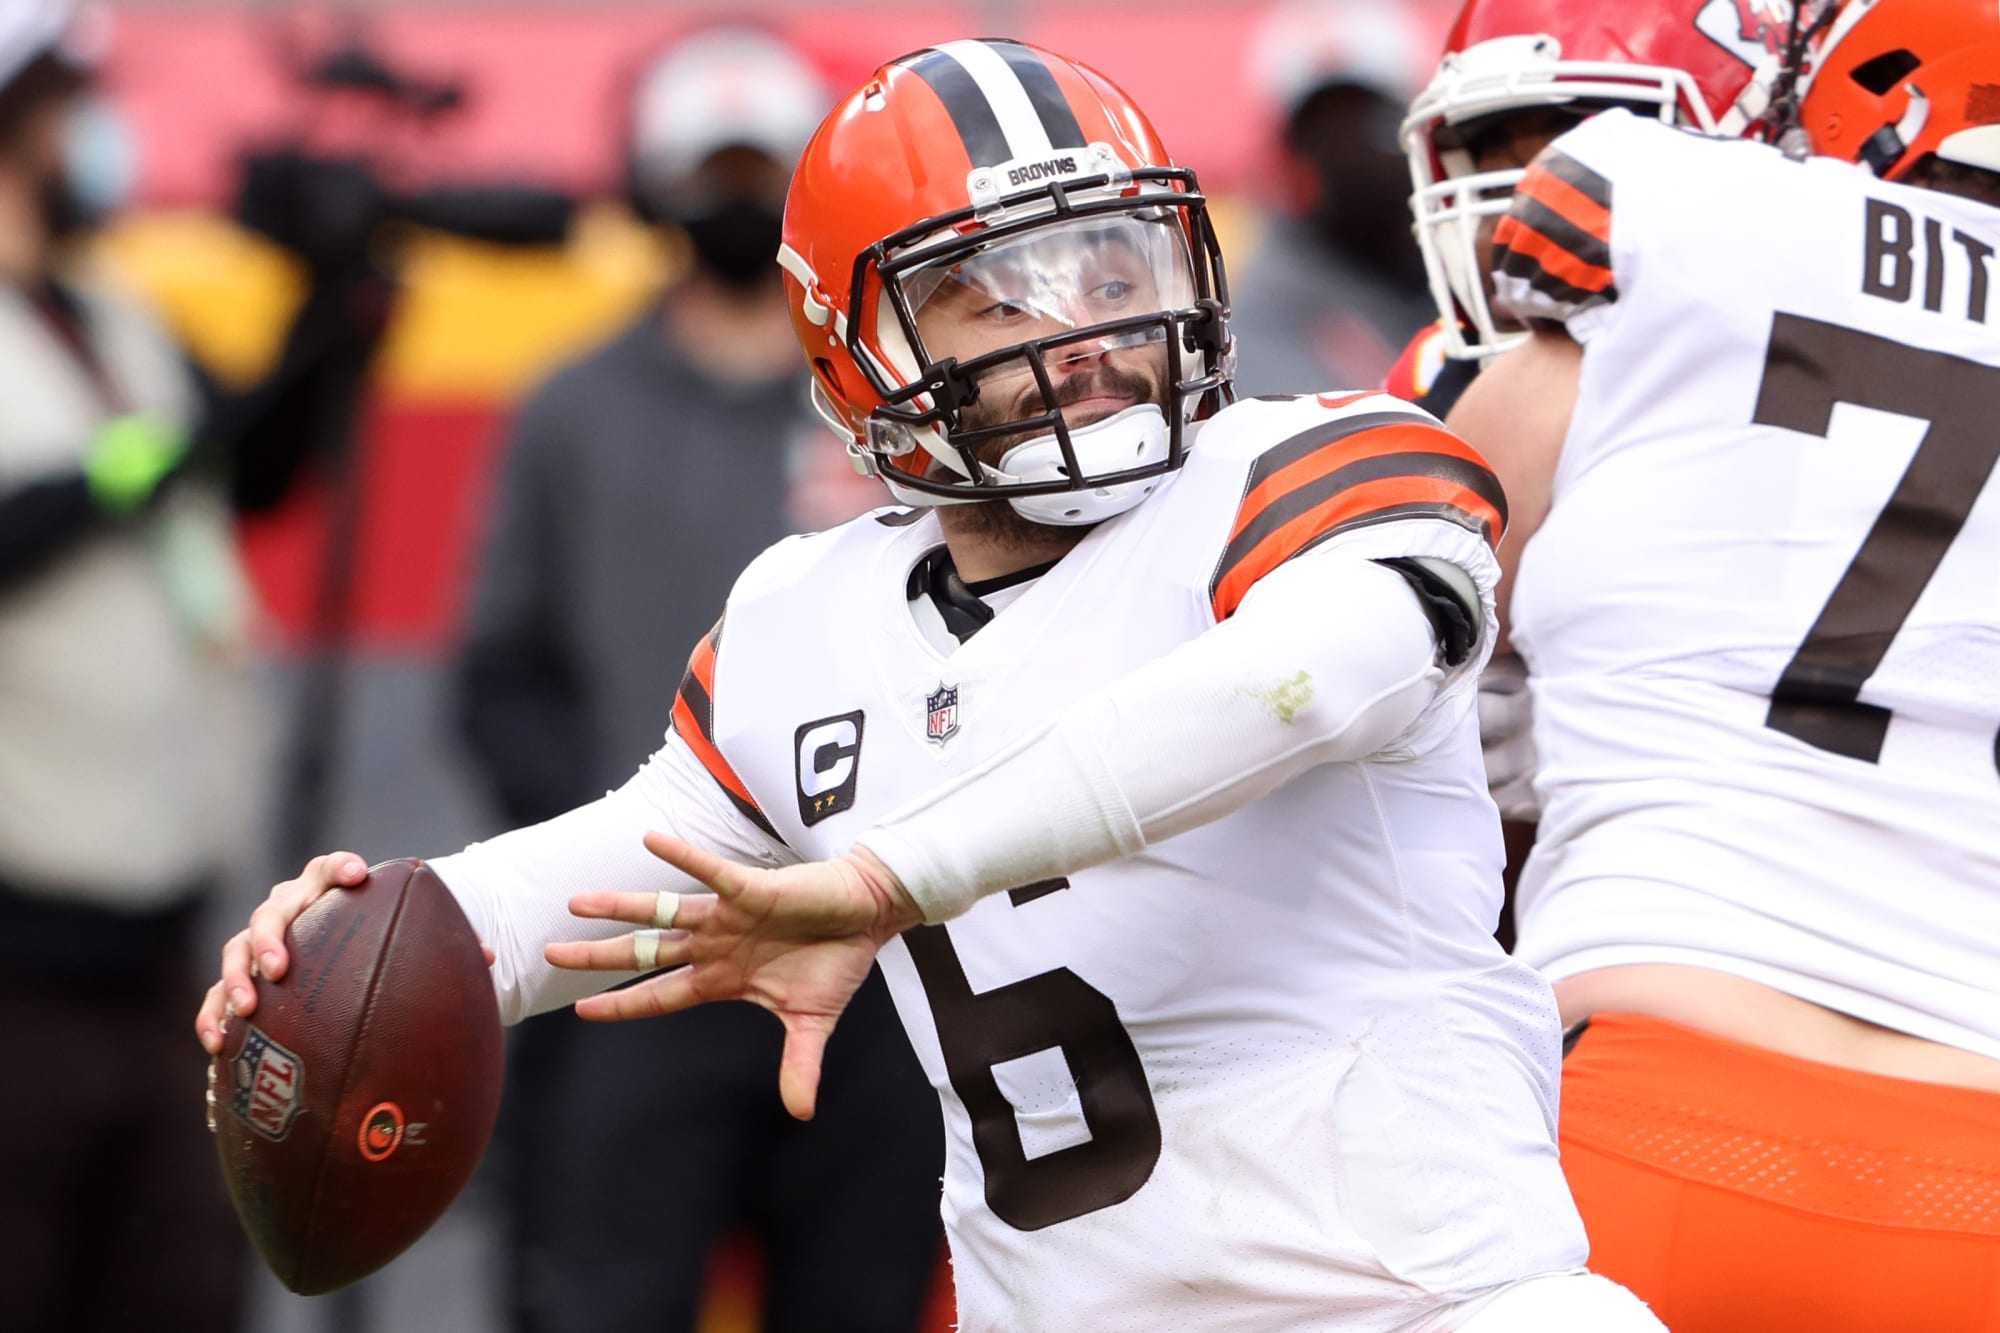 Cleveland Browns: Baker Mayfield matters most